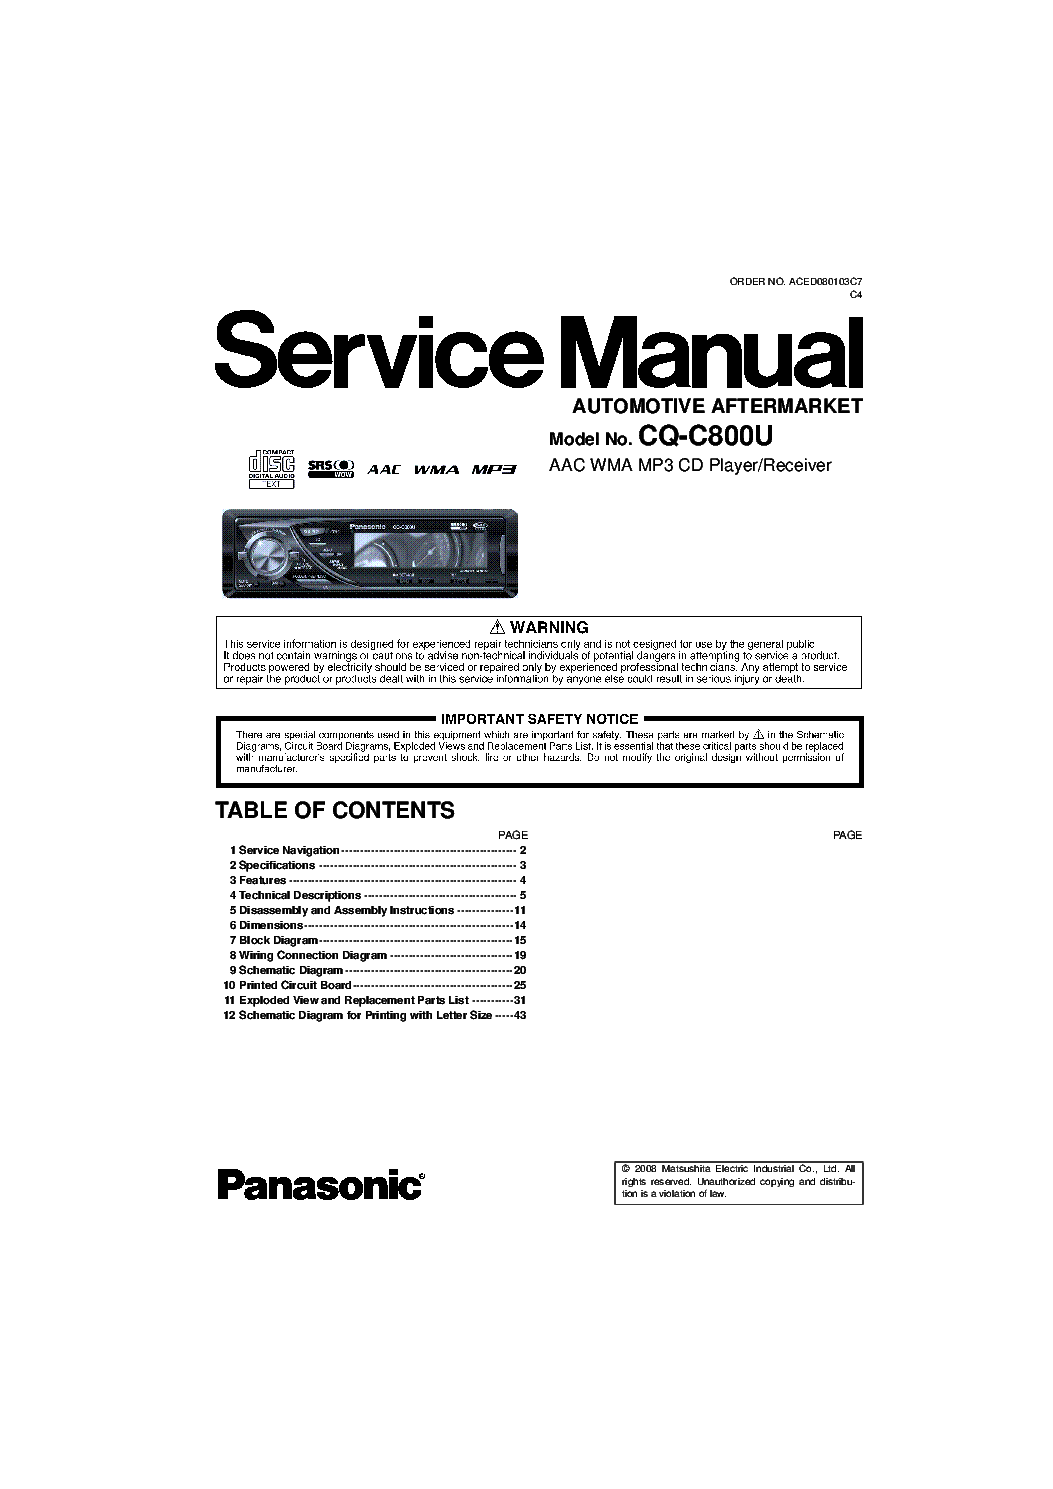 diagram free collection panasonic cq c7103u manual - millions, Wiring diagram